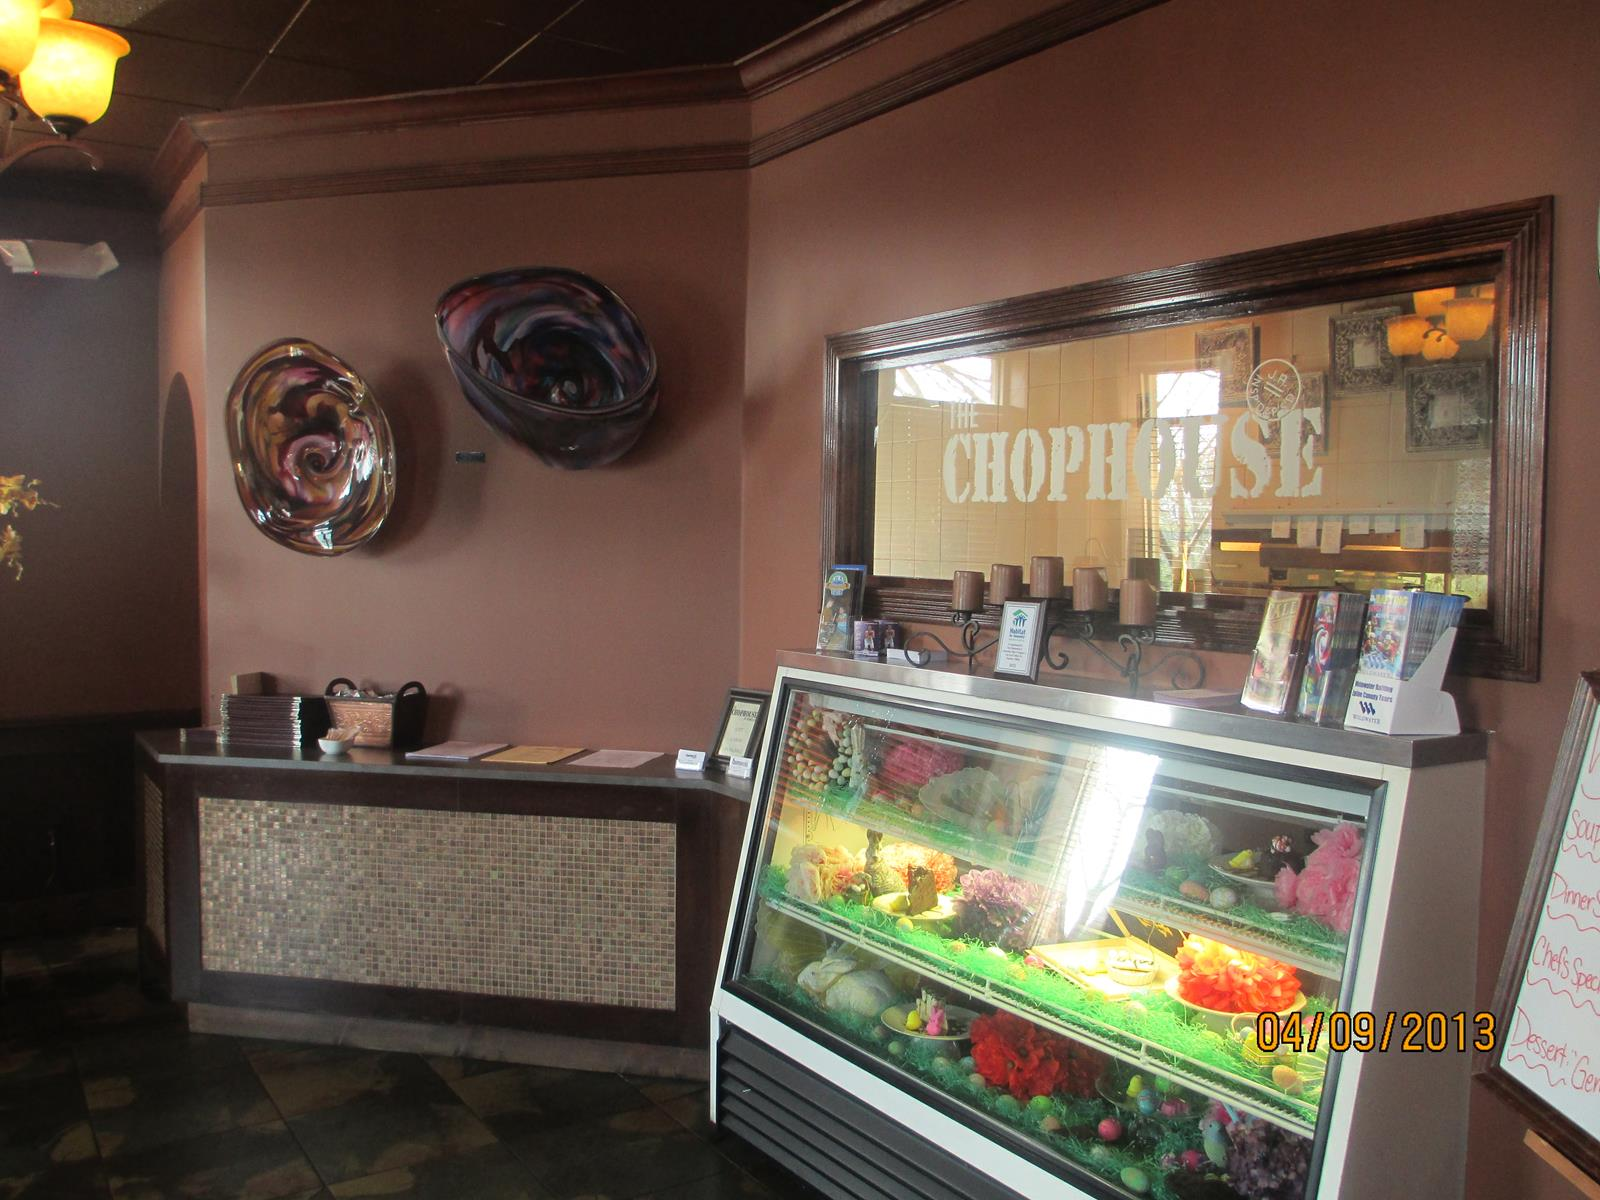 Inside The Chophouse Restaurant in Hiawassee